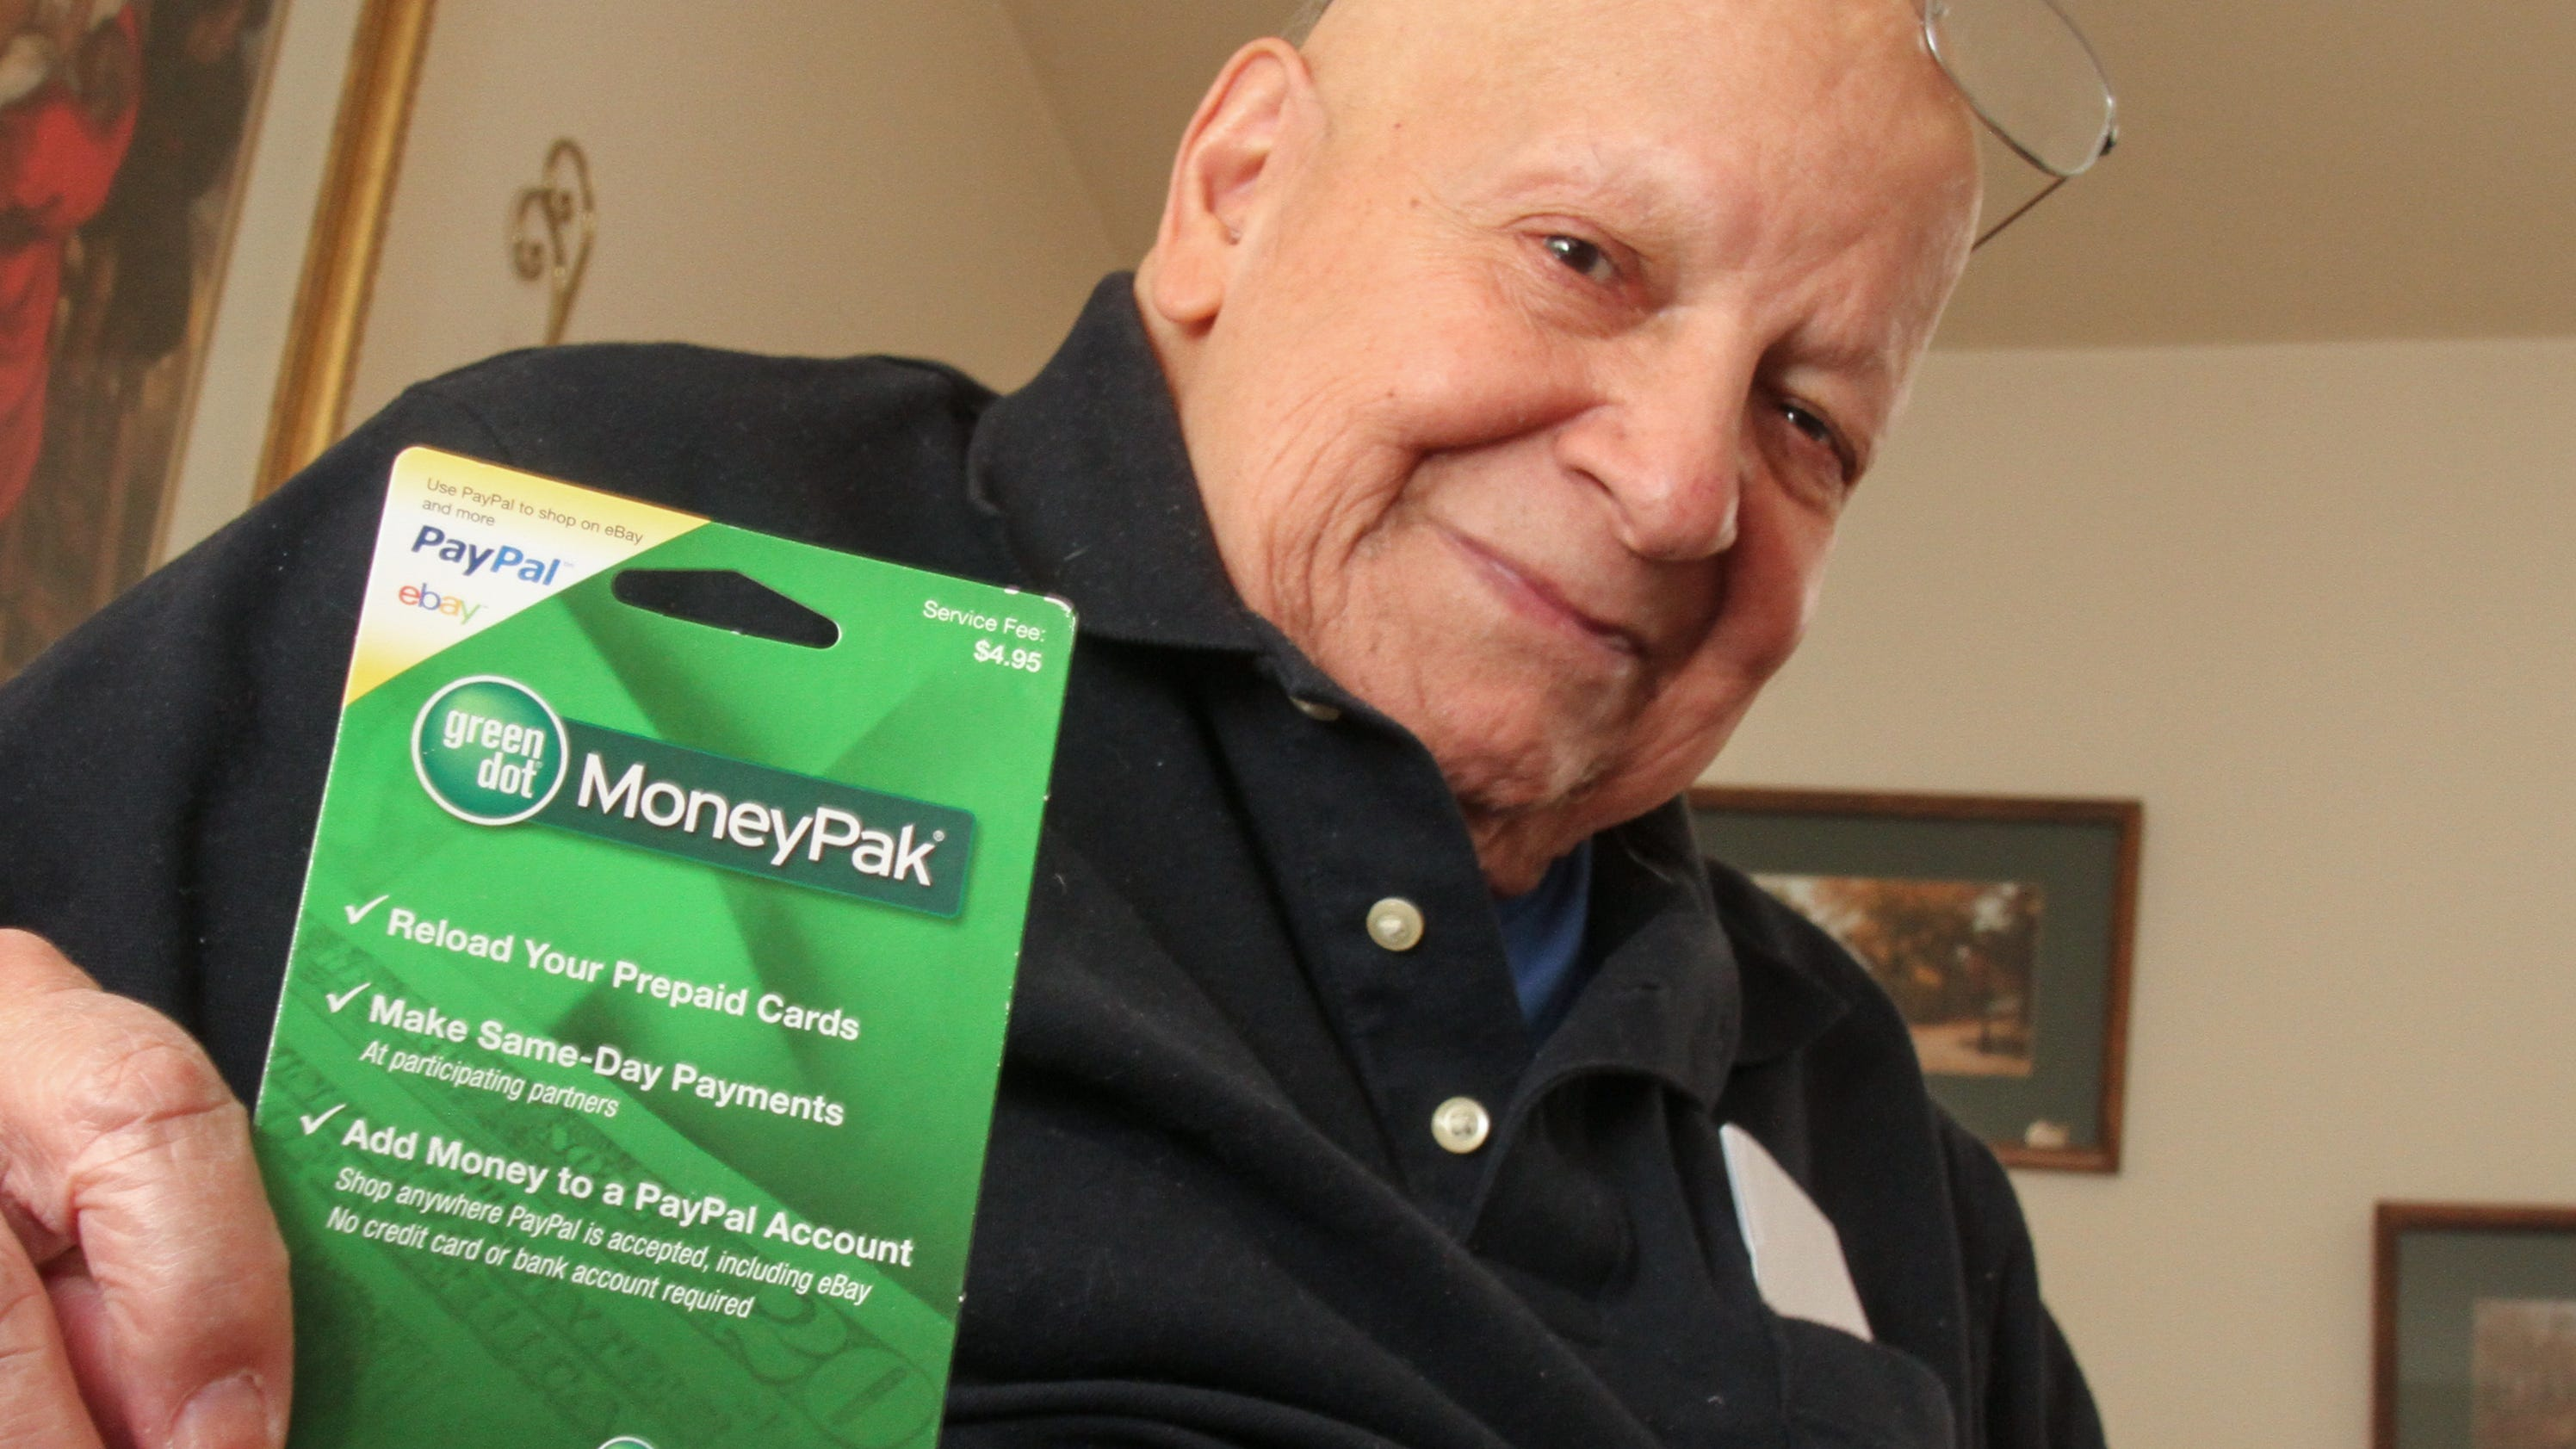 moneybak the real truth about pre paid credit cards from a former  green dot moneypak where did man s go